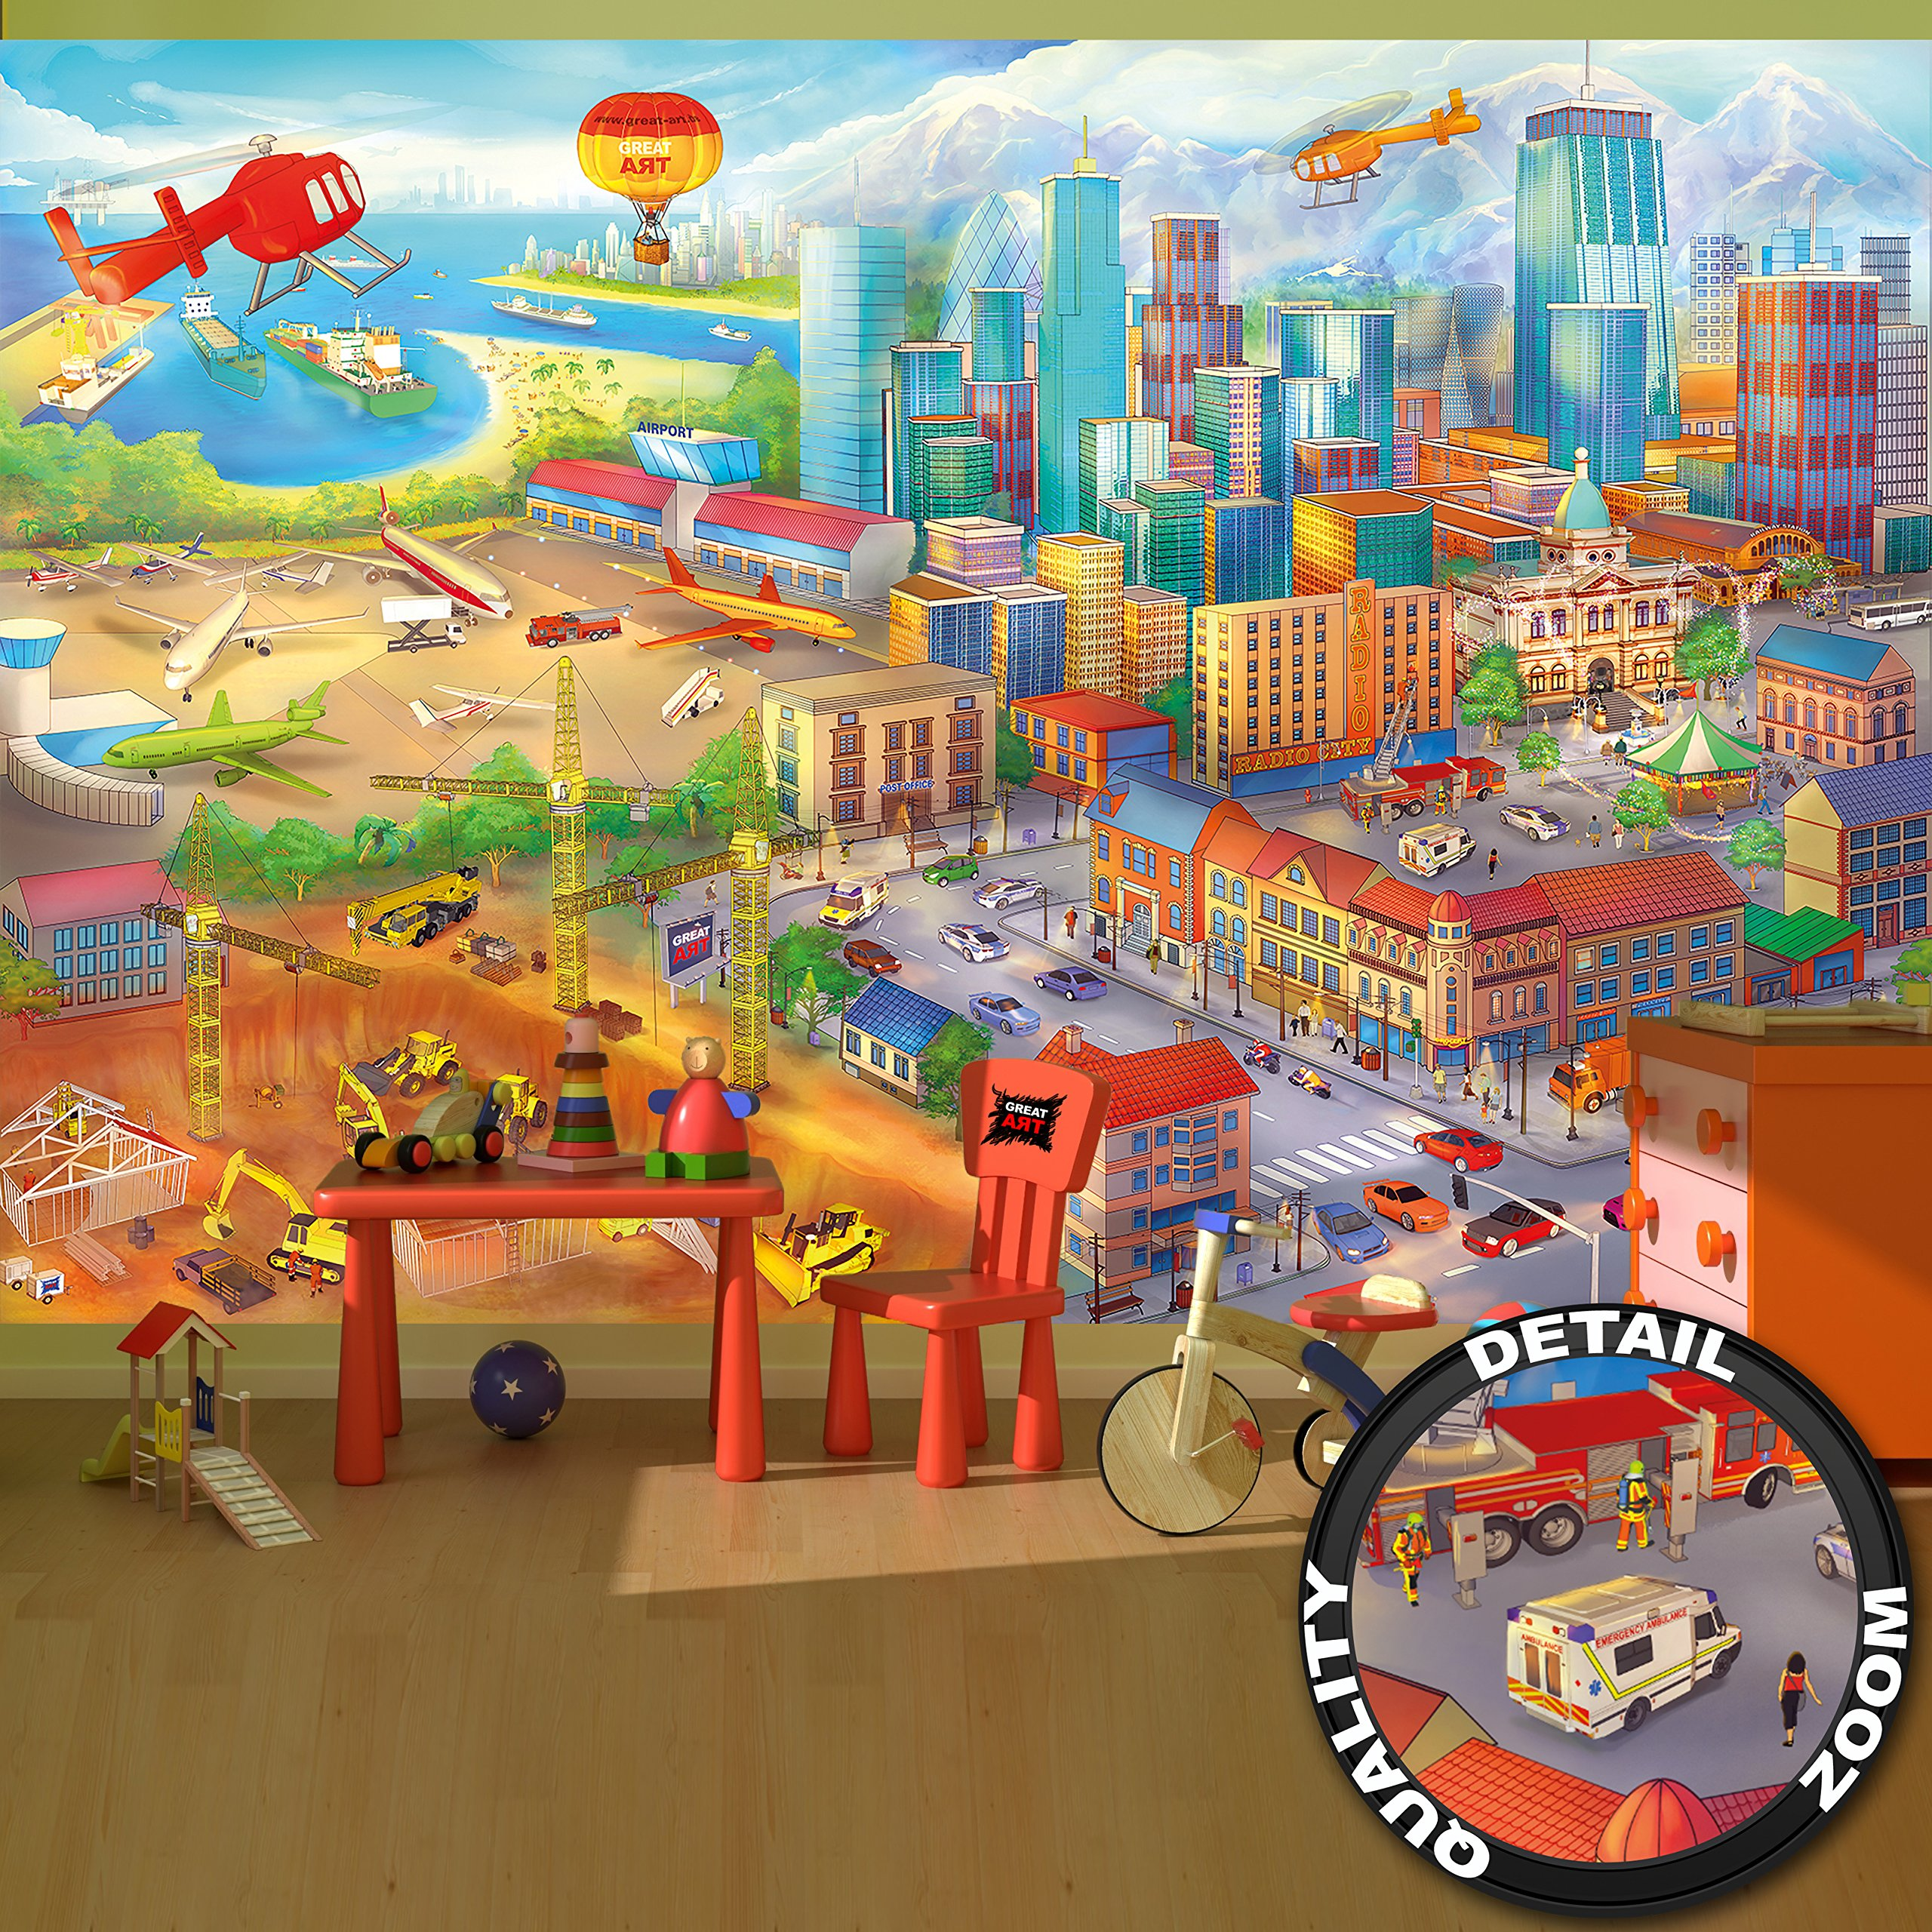 GREAT ART Wallpaper Children Room Comic Style Picture City Building-site Helicopter Airplane Airport Poster (132.3 Inch x 93.7 Inch/336 x 238 cm)